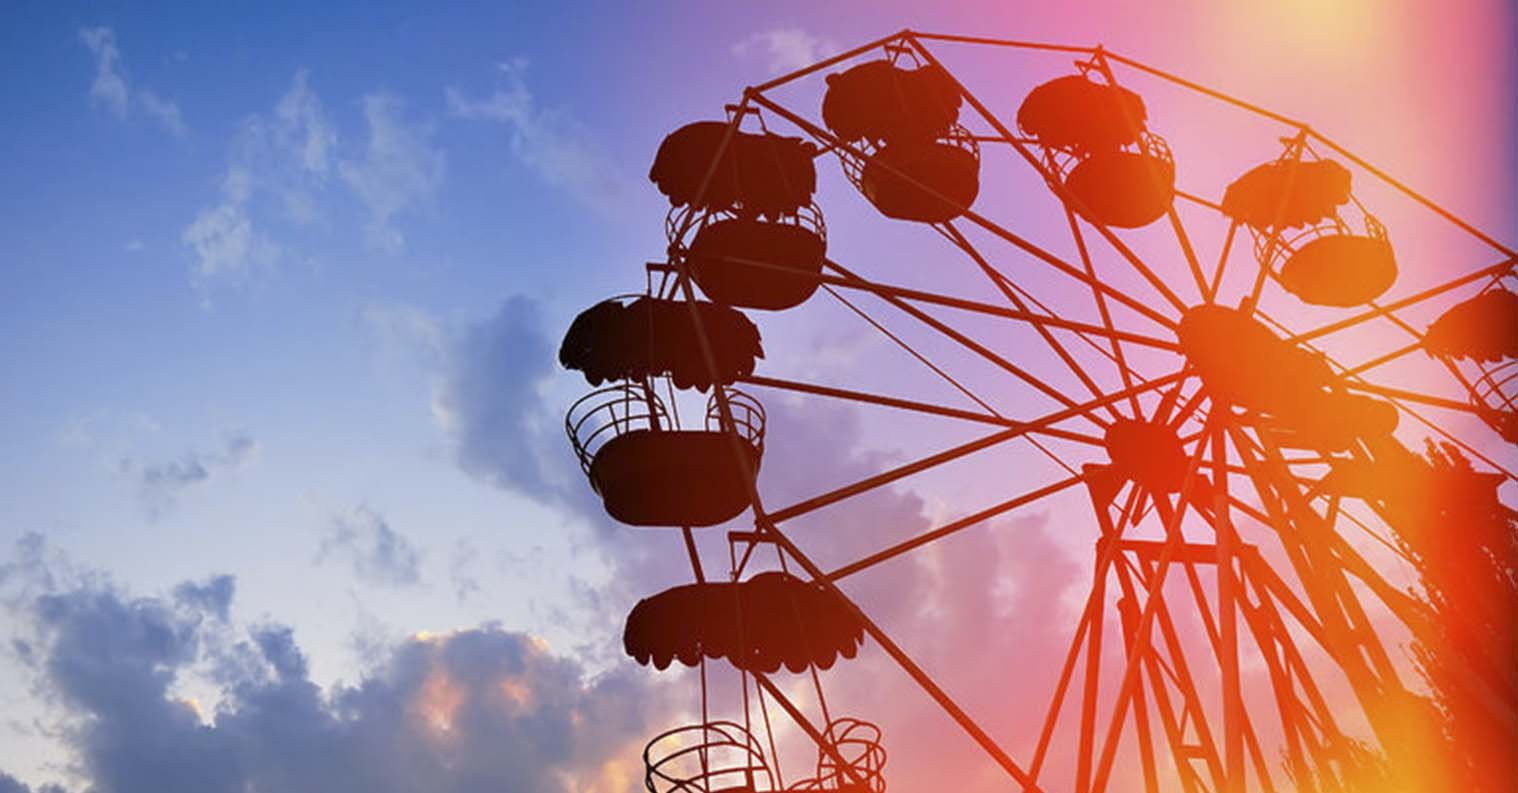 Whether you're living in Virginia Beach, Norfolk, Quantico, Washington, DC, or somewhere else in the Virginia area, you'll want to check out these amusement parks. They offer military discounts (and sometimes free tickets) for active duty, Reserve, and National Guard military families. Love having this list on hand!